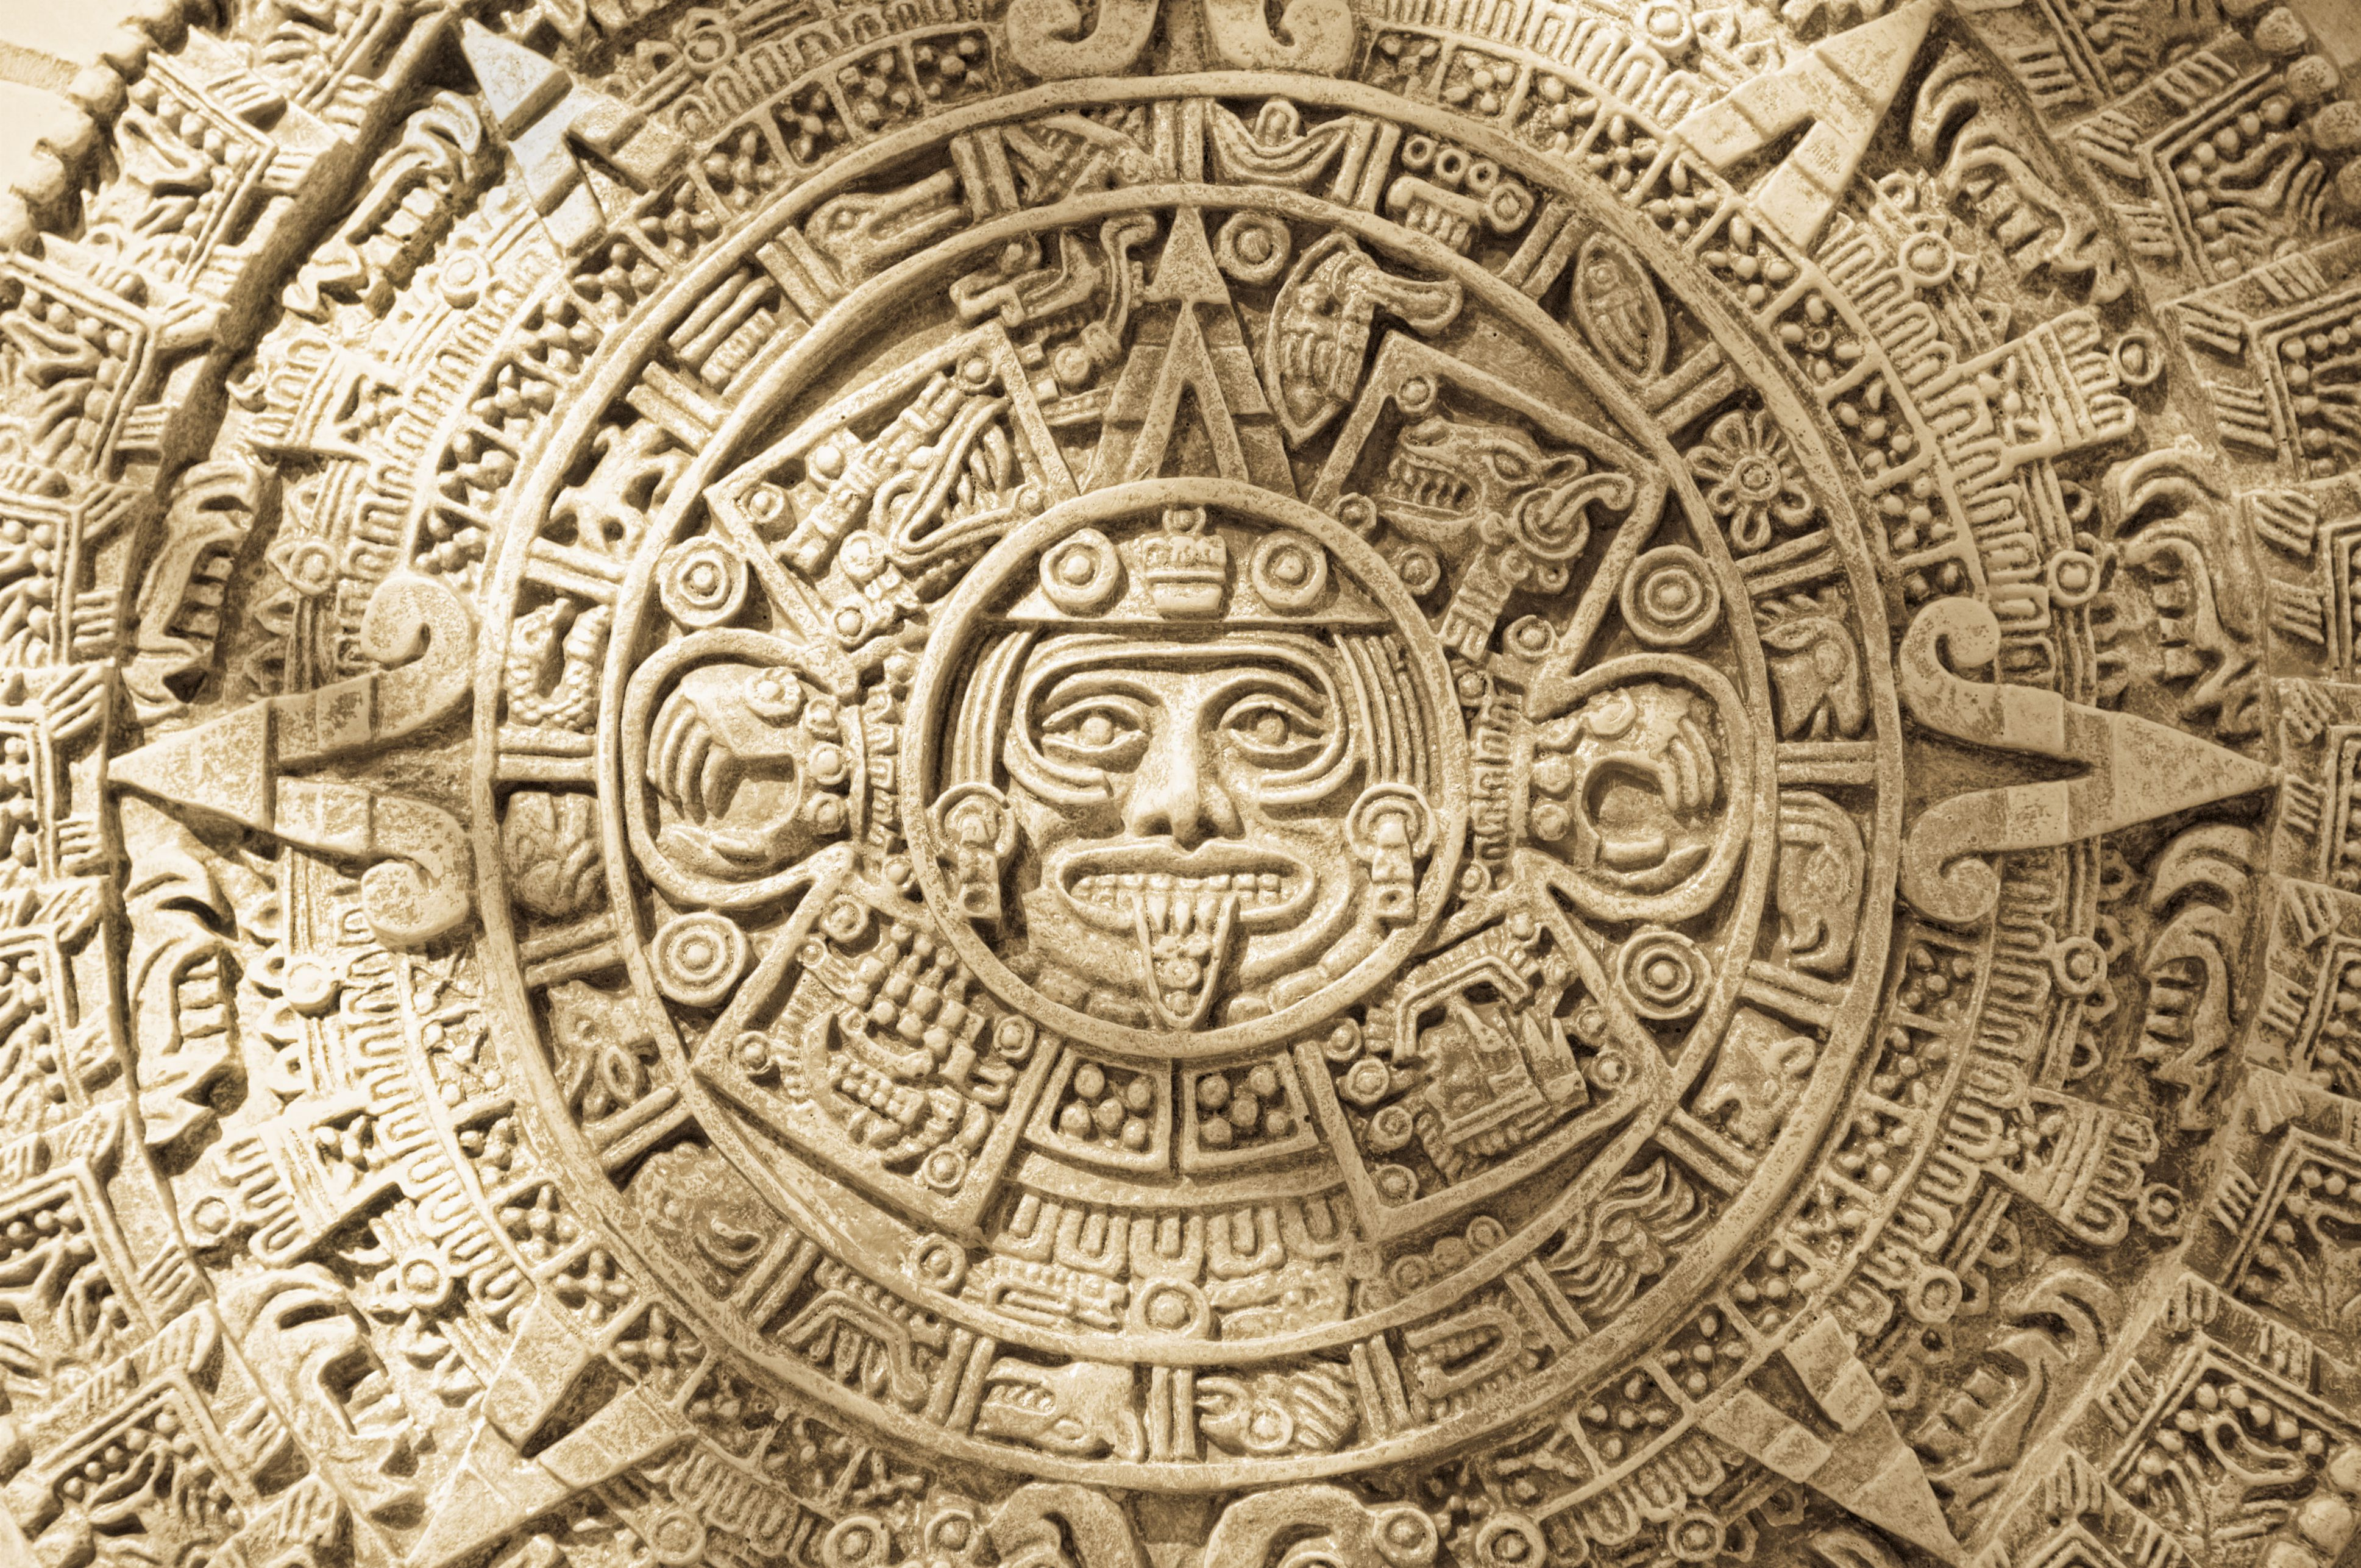 aztec creation myth the legend of the fifth sun